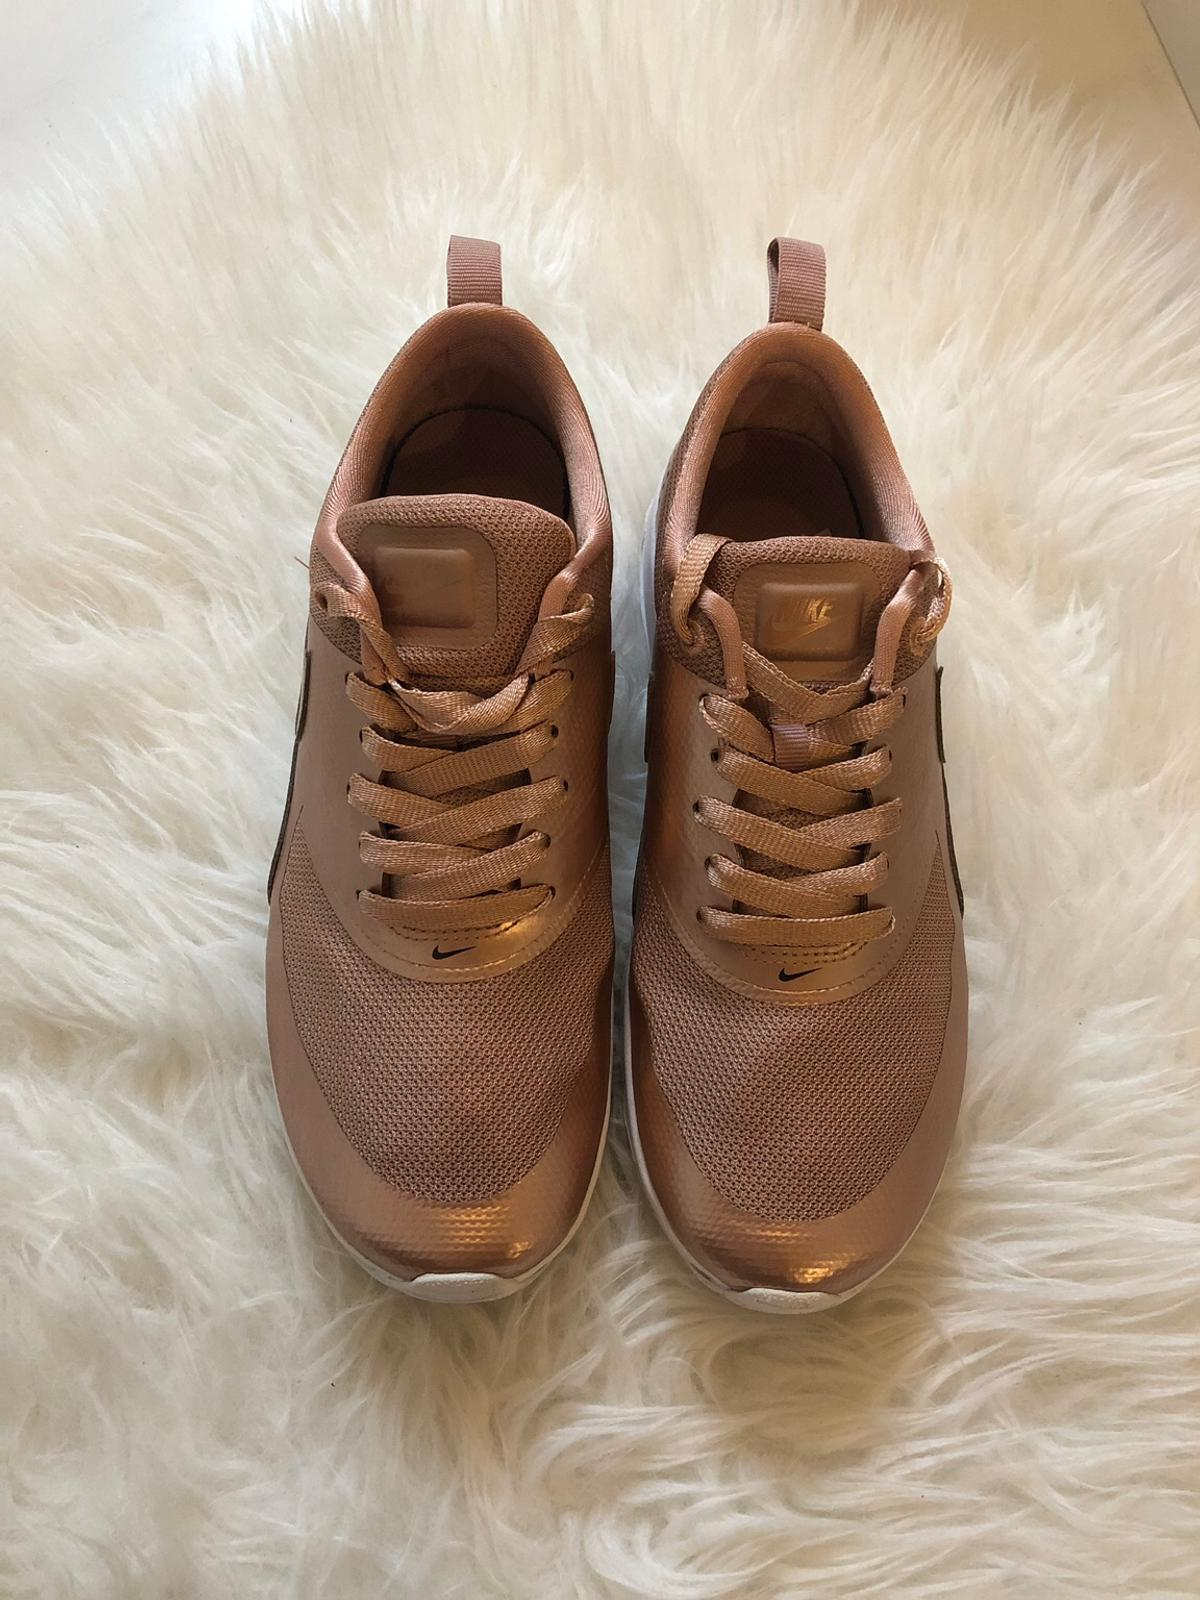 Nike Air Max Thea 38,5 Rose Gold in 37269 Eschwege for